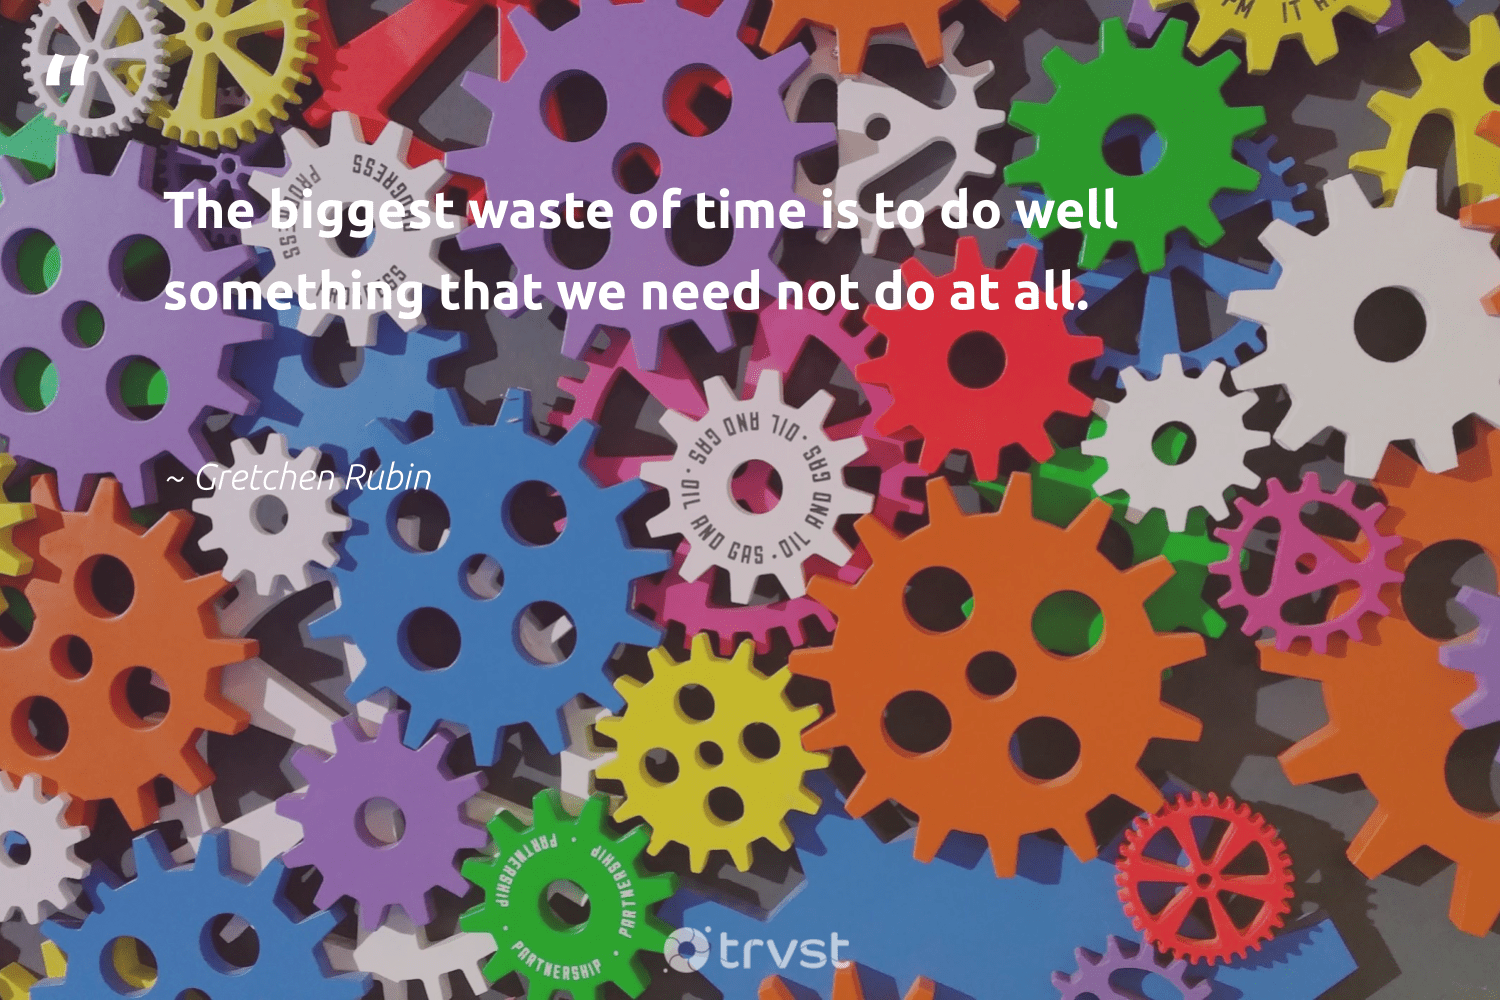 """""""The biggest waste of time is to do well something that we need not do at all.""""  - Gretchen Rubin #trvst #quotes #waste #giveback #socialchange #ethicalbusiness #dogood #weareallone #socialimpact #betterplanet #takeaction #makeadifference"""